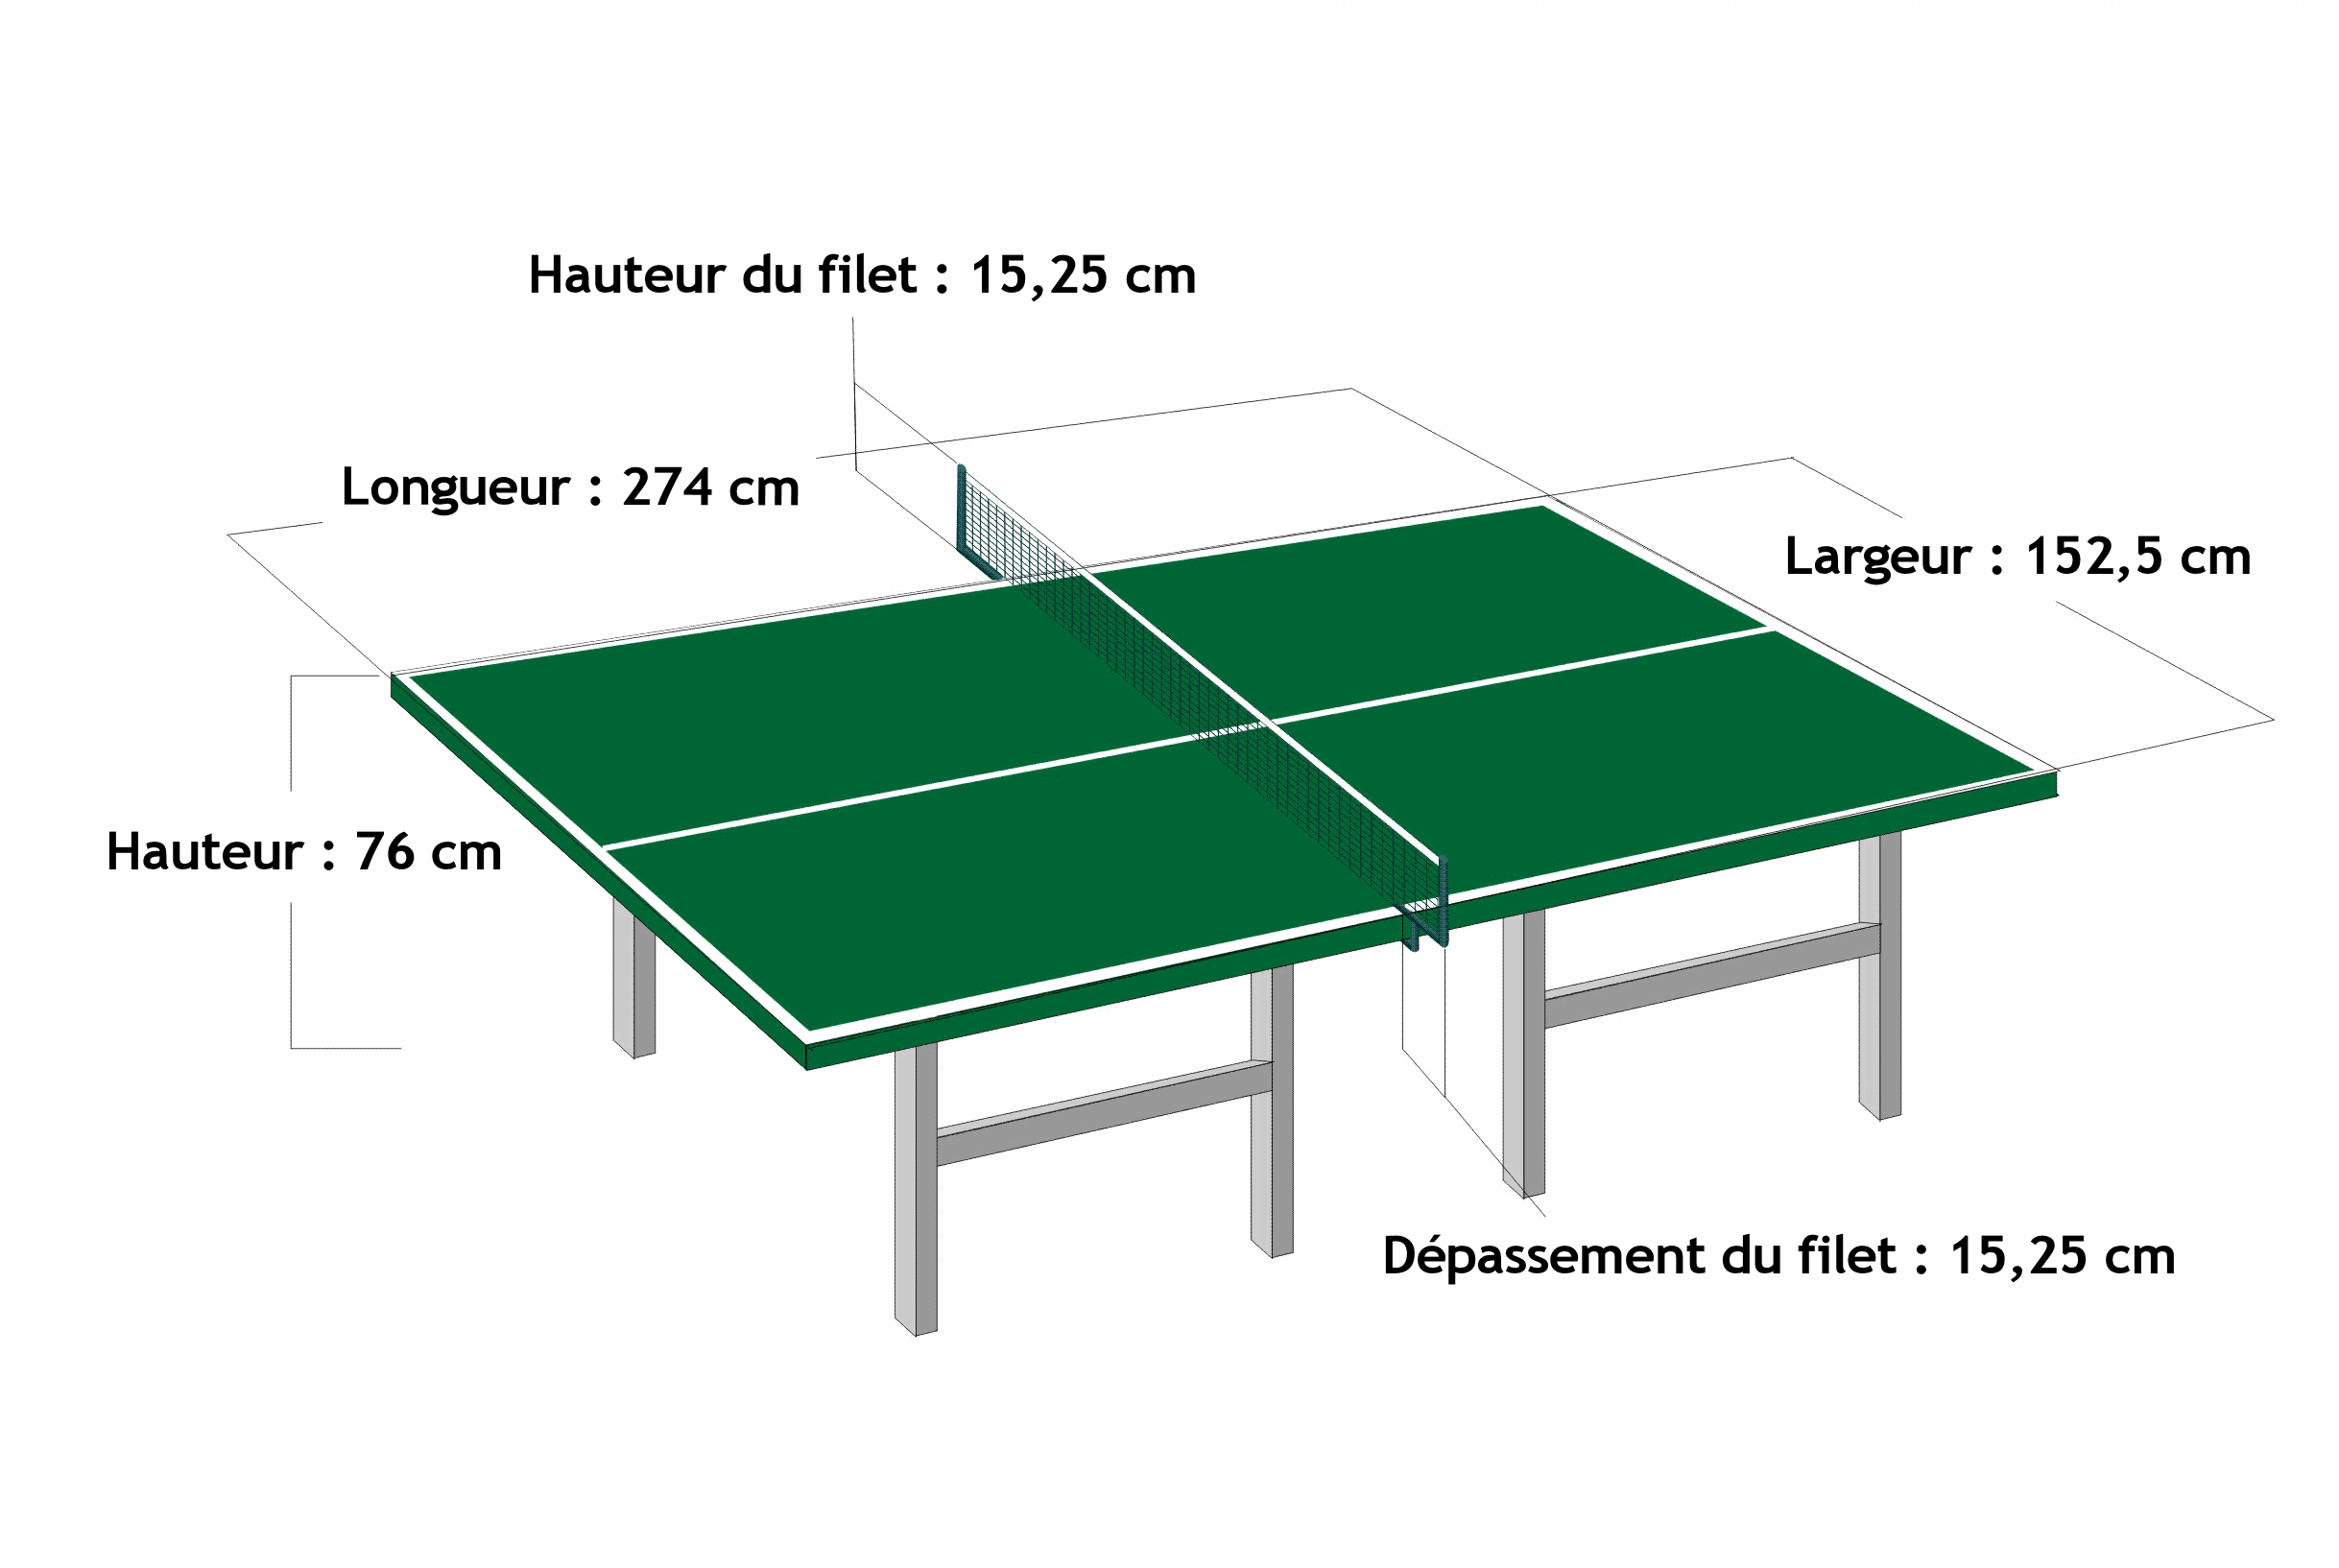 Tennis de table - Hauteur filet tennis de table ...